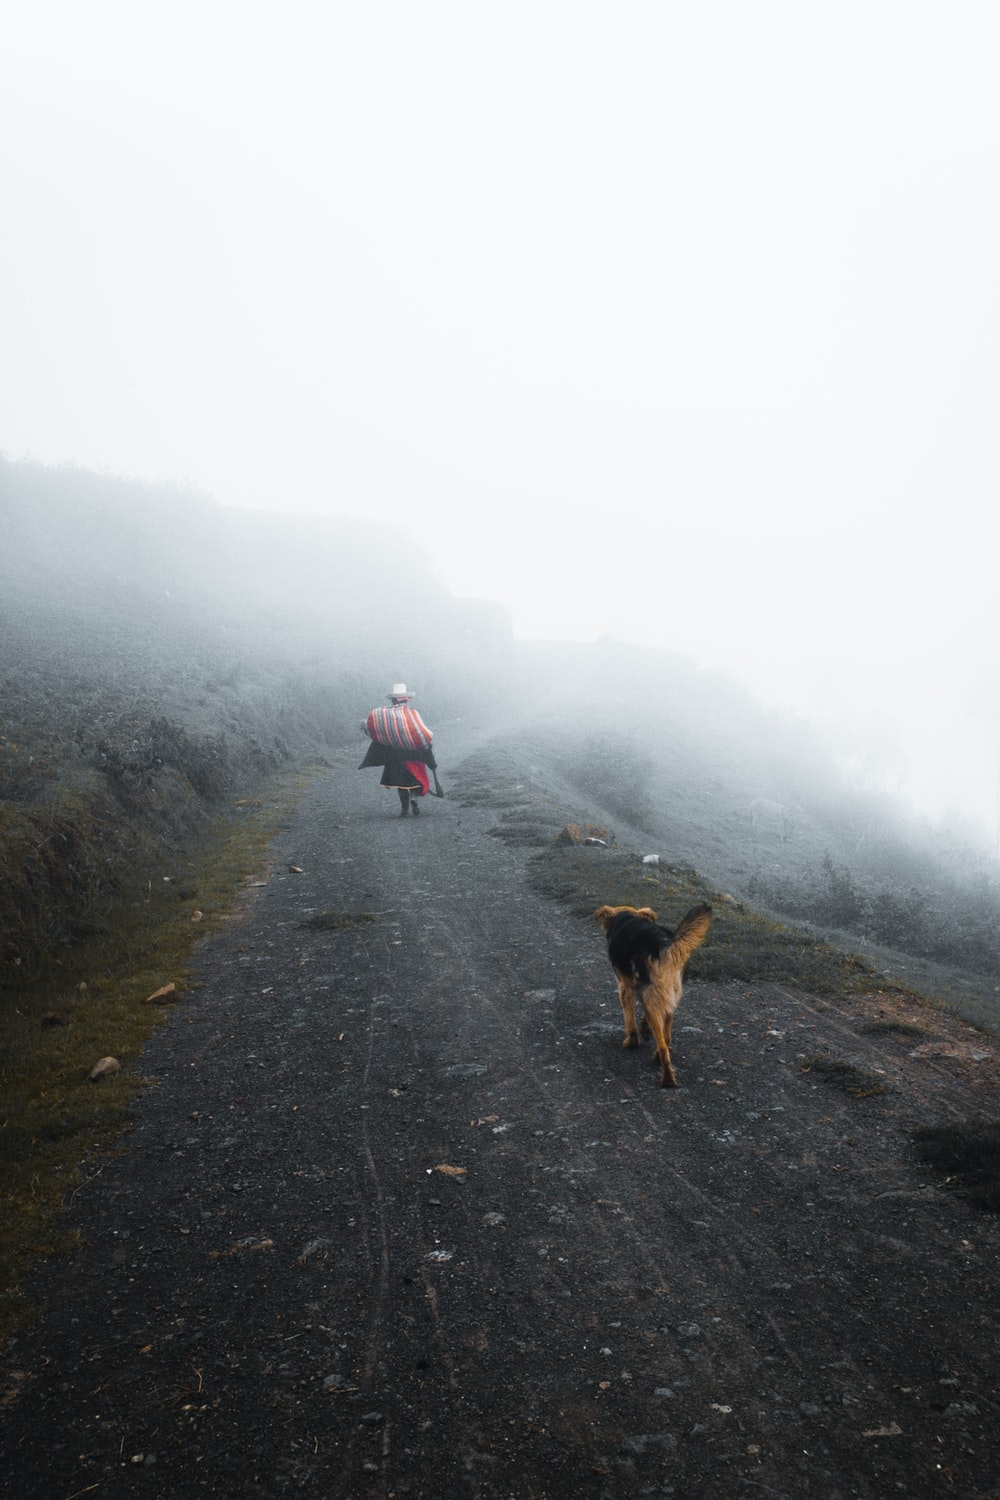 person on hill with fogs